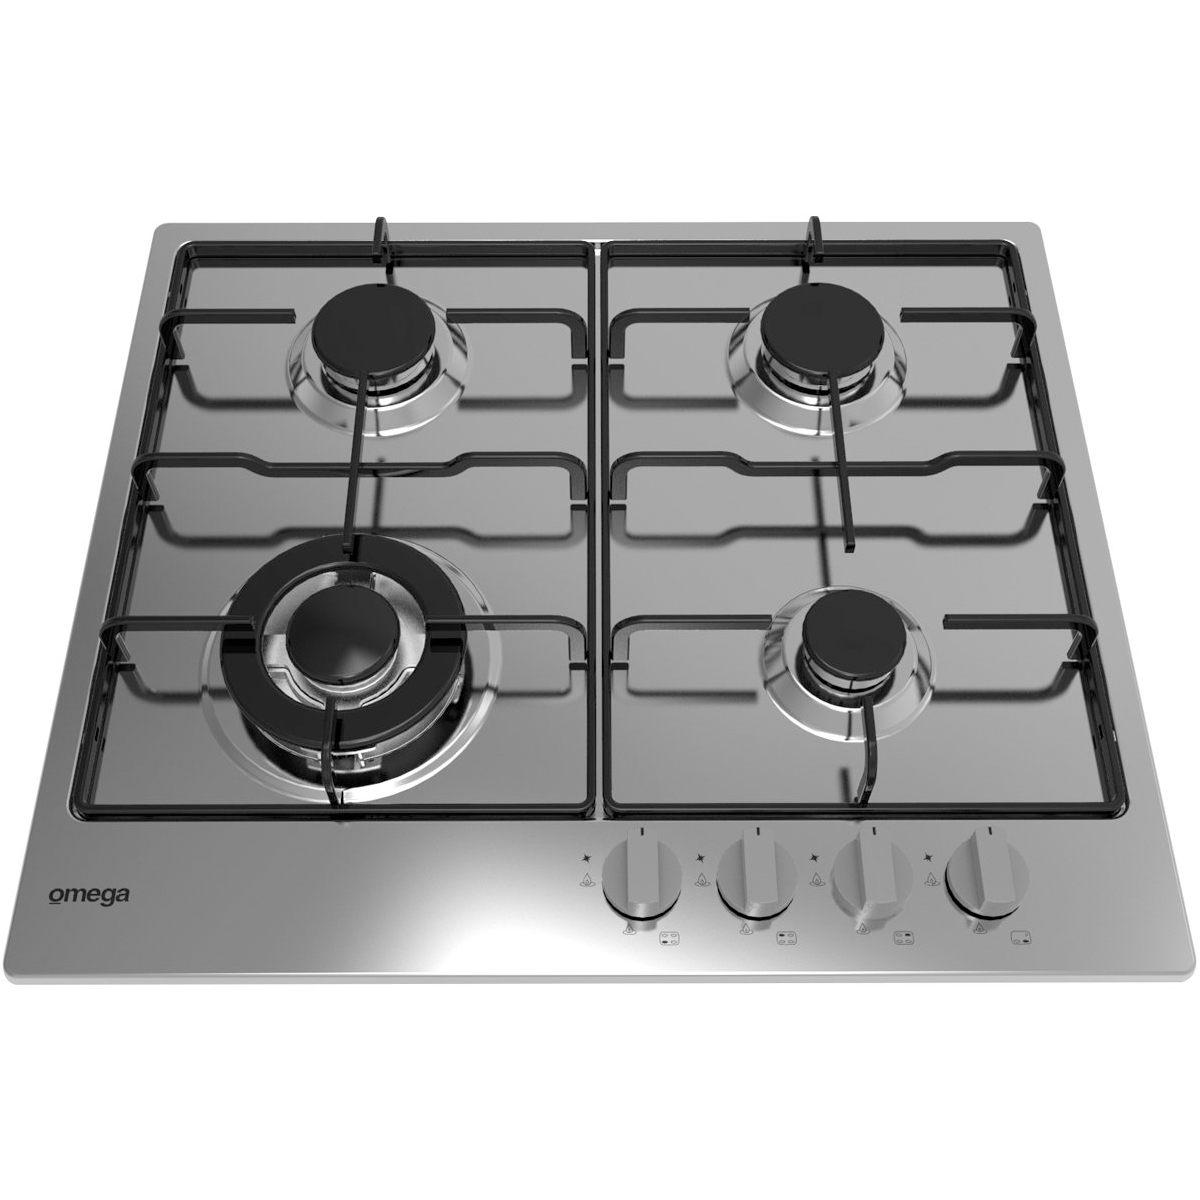 Omega OCG61XA 60cm Natural Gas Cooktop